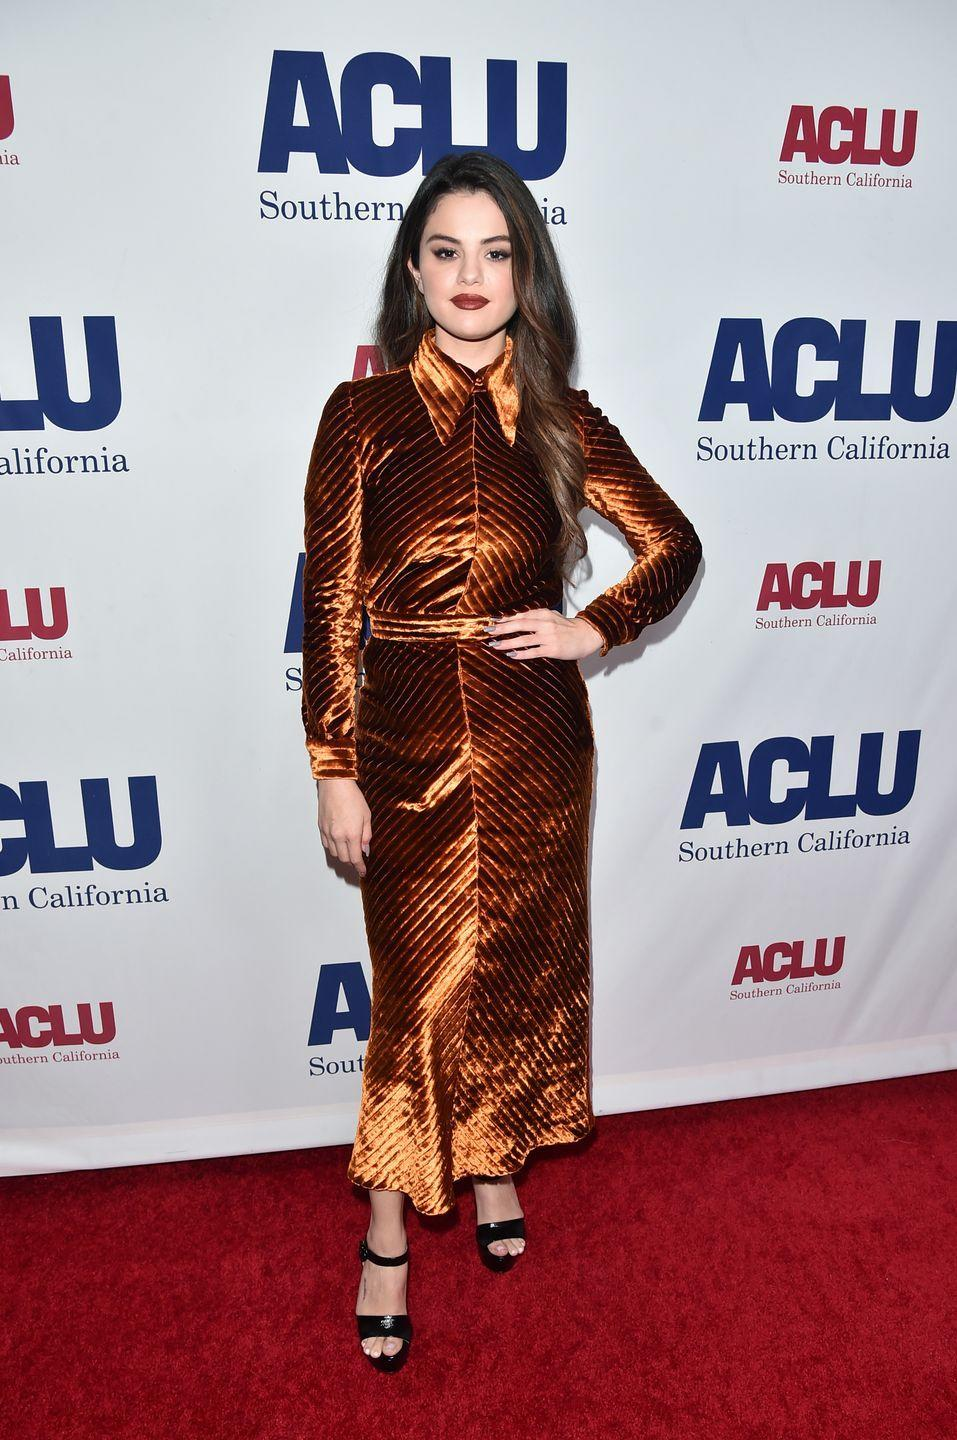 <p>Attending the ACLU SoCal's Annual Bill of Rights dinner at the Beverly Wilshire Four Seasons Hotel.</p>